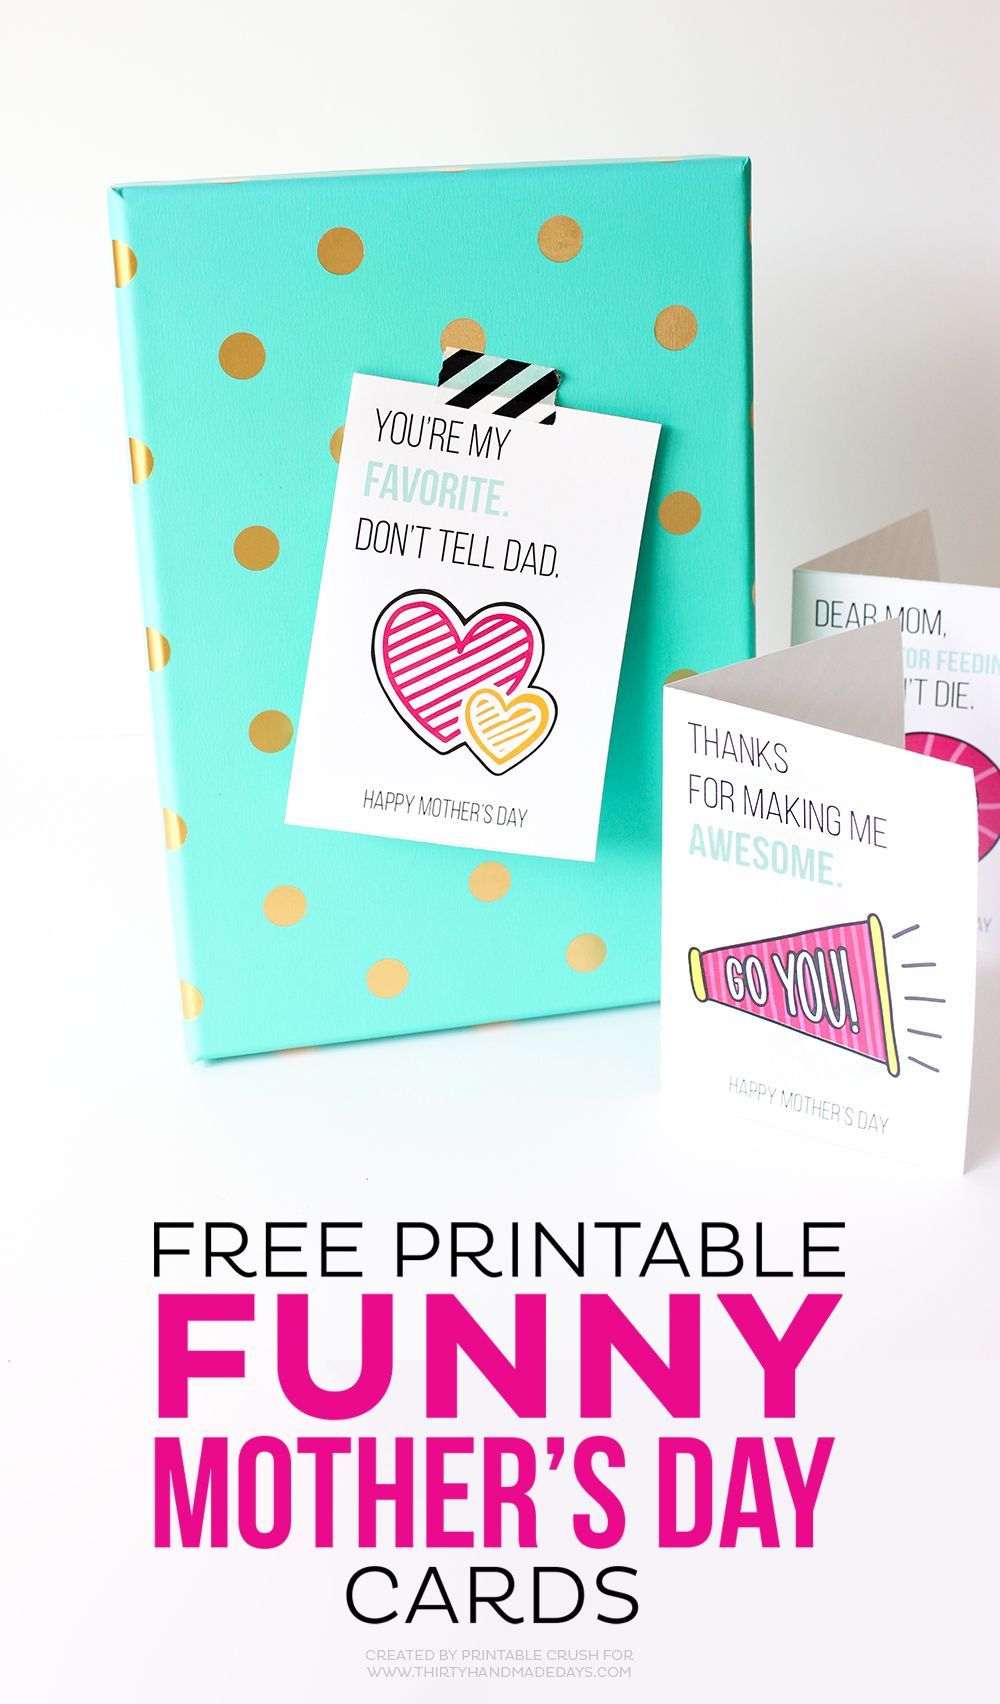 Printable Funny Mother's Day Cards | Holiday Stuff | Pinterest - Free Printable Funny Mother's Day Cards